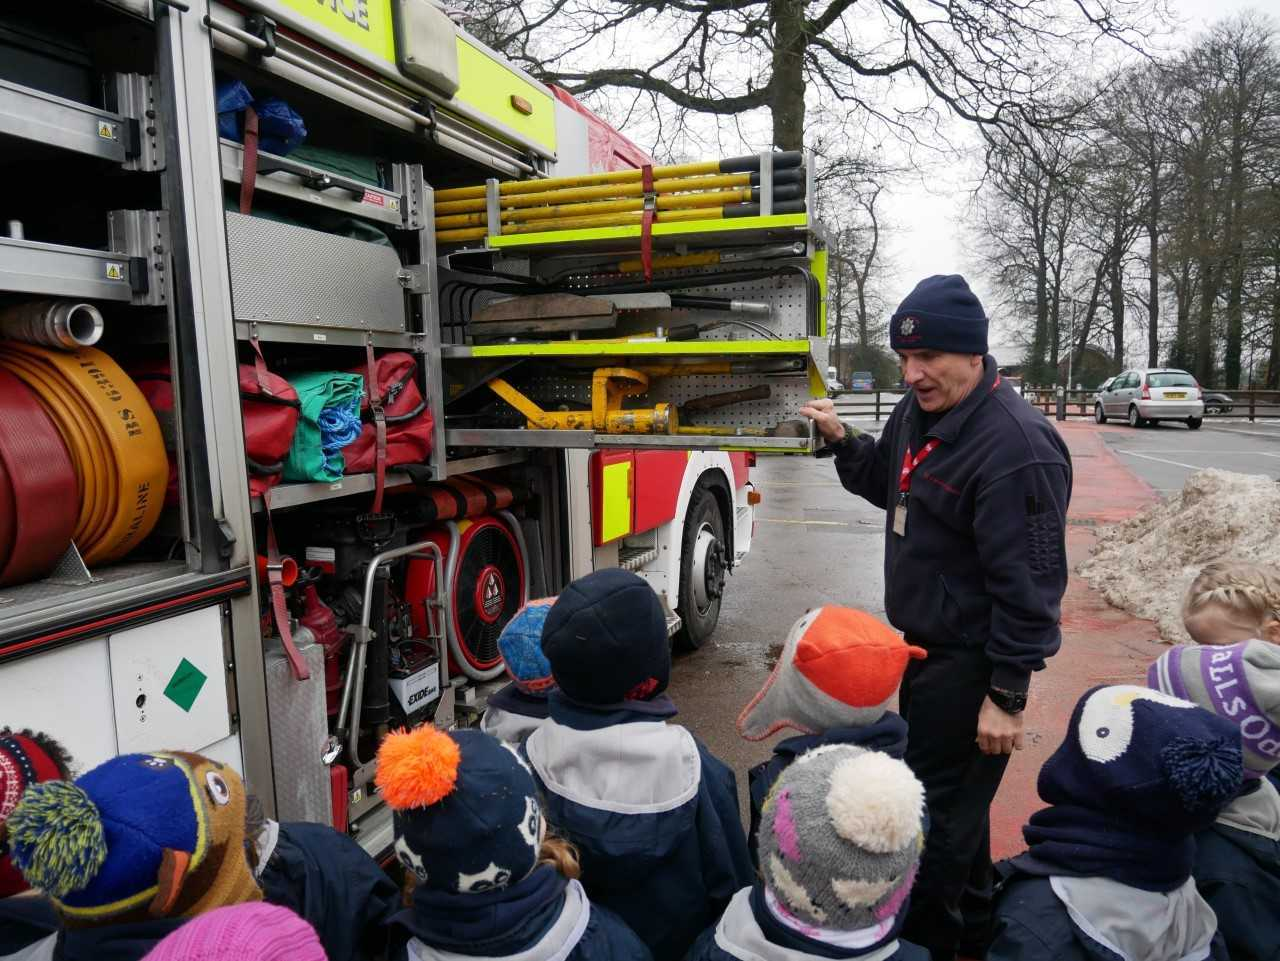 Dee Road firefighters pay a visit to The Oratory